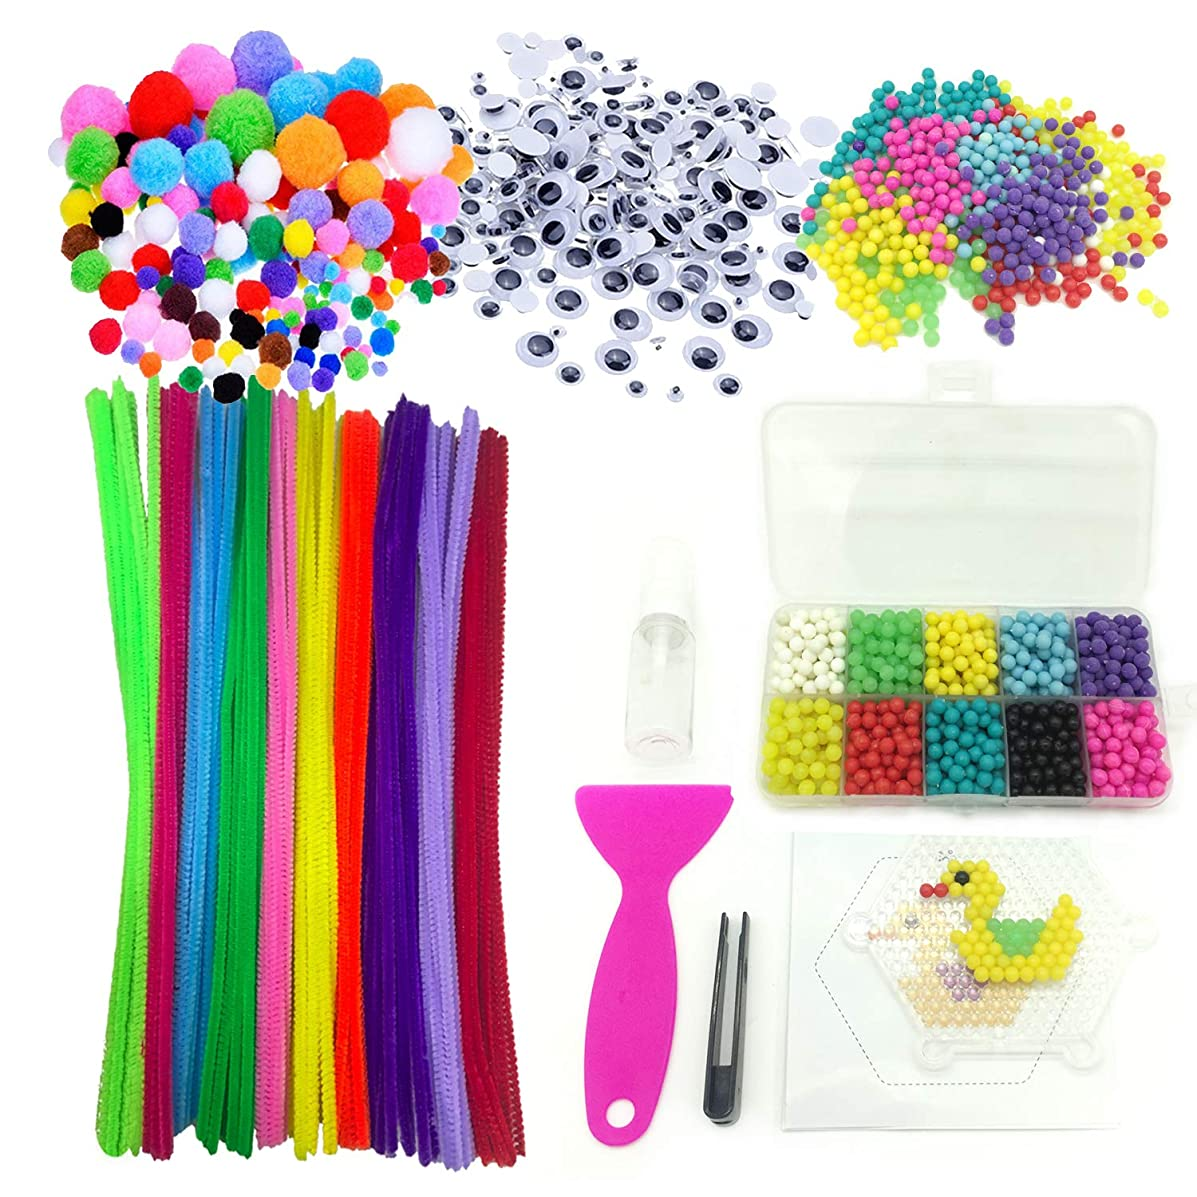 Wartoon Pipe Cleaners Crafts Set, Pipe Cleaners Chenille Stem and Pompoms with Googly Wiggle Eyes and Beads Complete Set for Aquabeads and Beados Craft DIY Art Supplies, 2500 Pieces